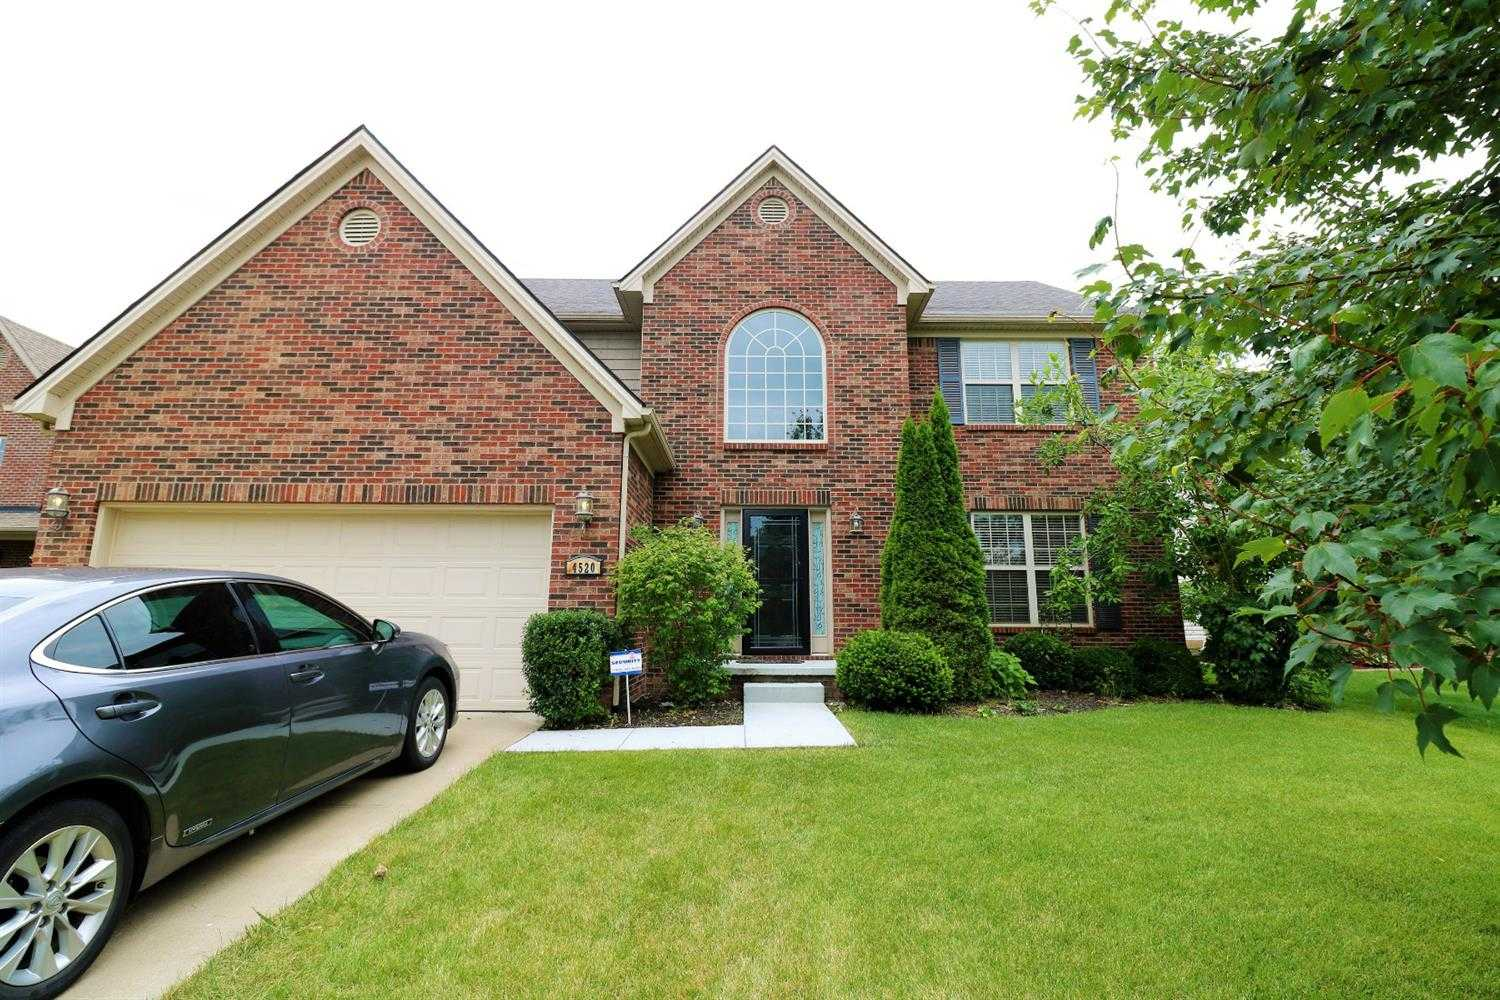 $289,000 - 4Br/3Ba -  for Sale in Chilesburg, Lexington